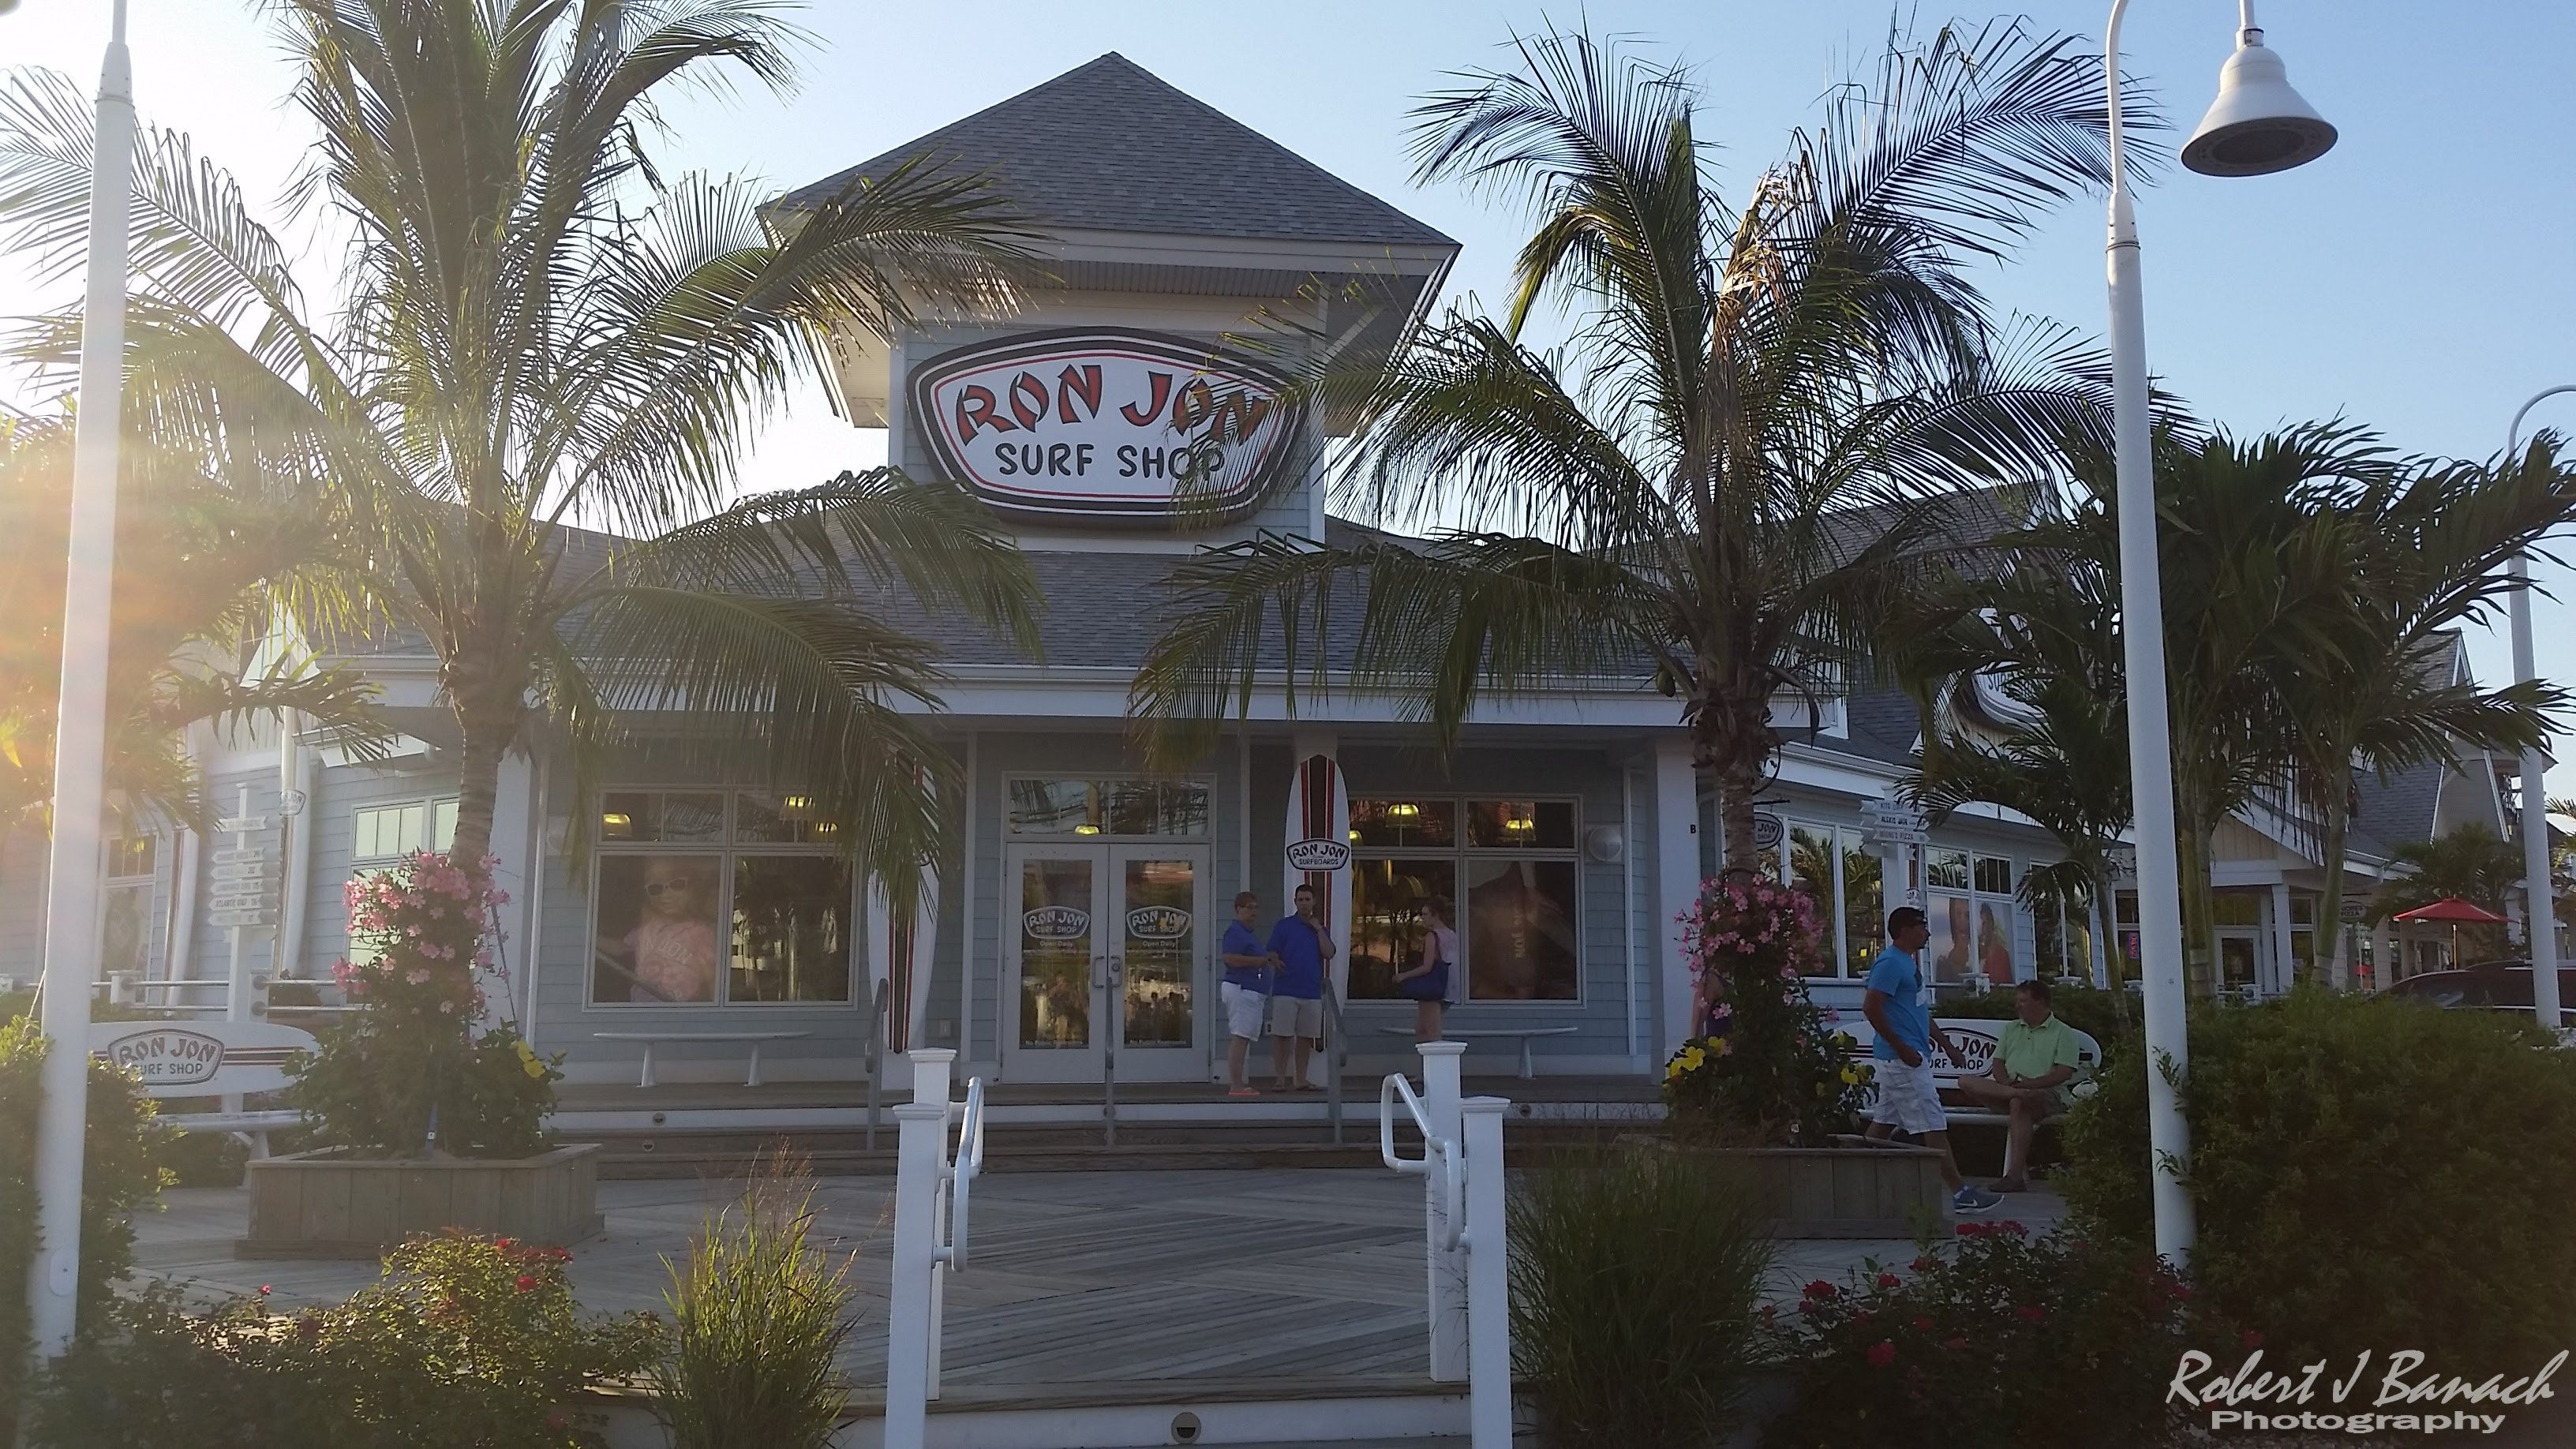 67th st towncenter a great place to shop and eat